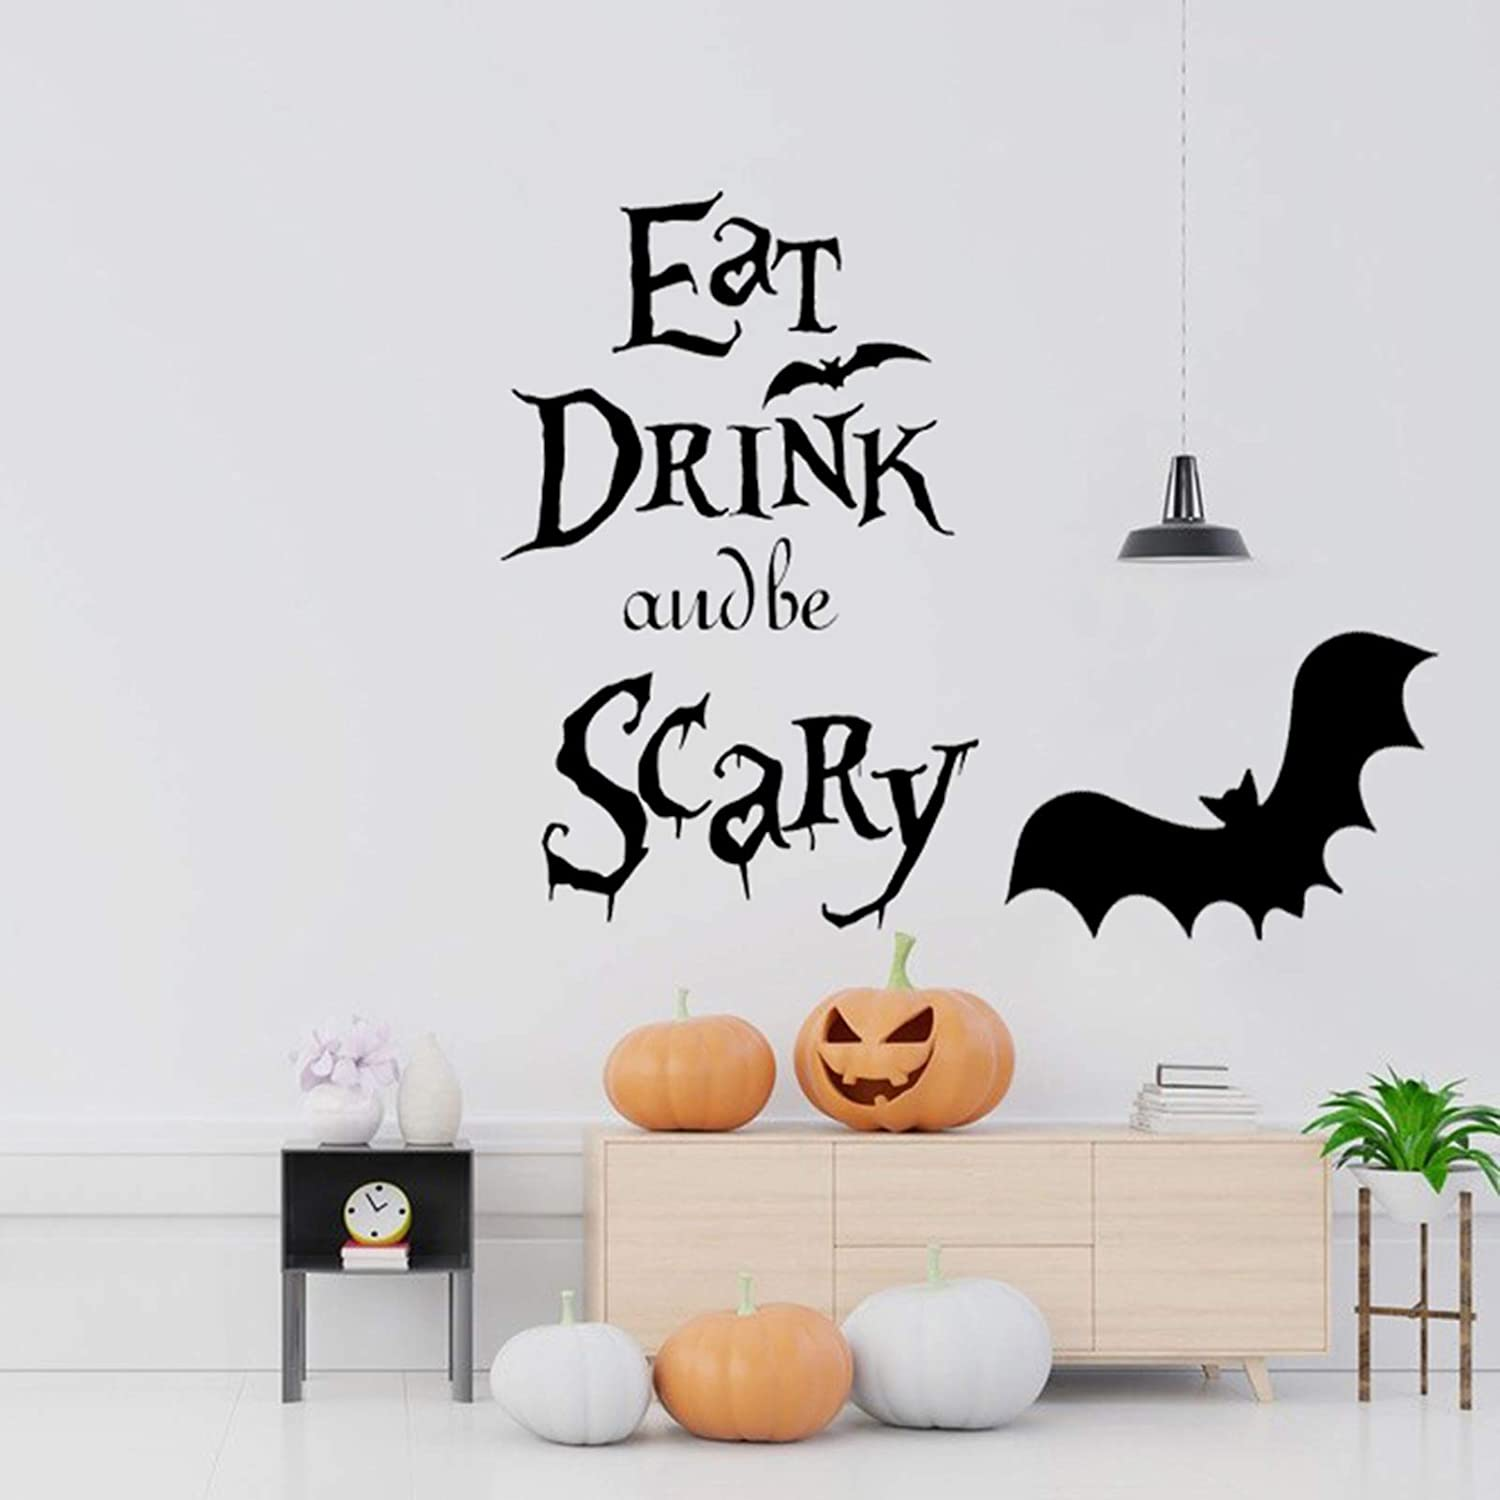 Eutecado Halloween Bat Wall Sticker, EAT Drink and be Scary Letterings Wall Decals Window Clings Stickers Scary Decor, Removable Wall Posters for Living Room